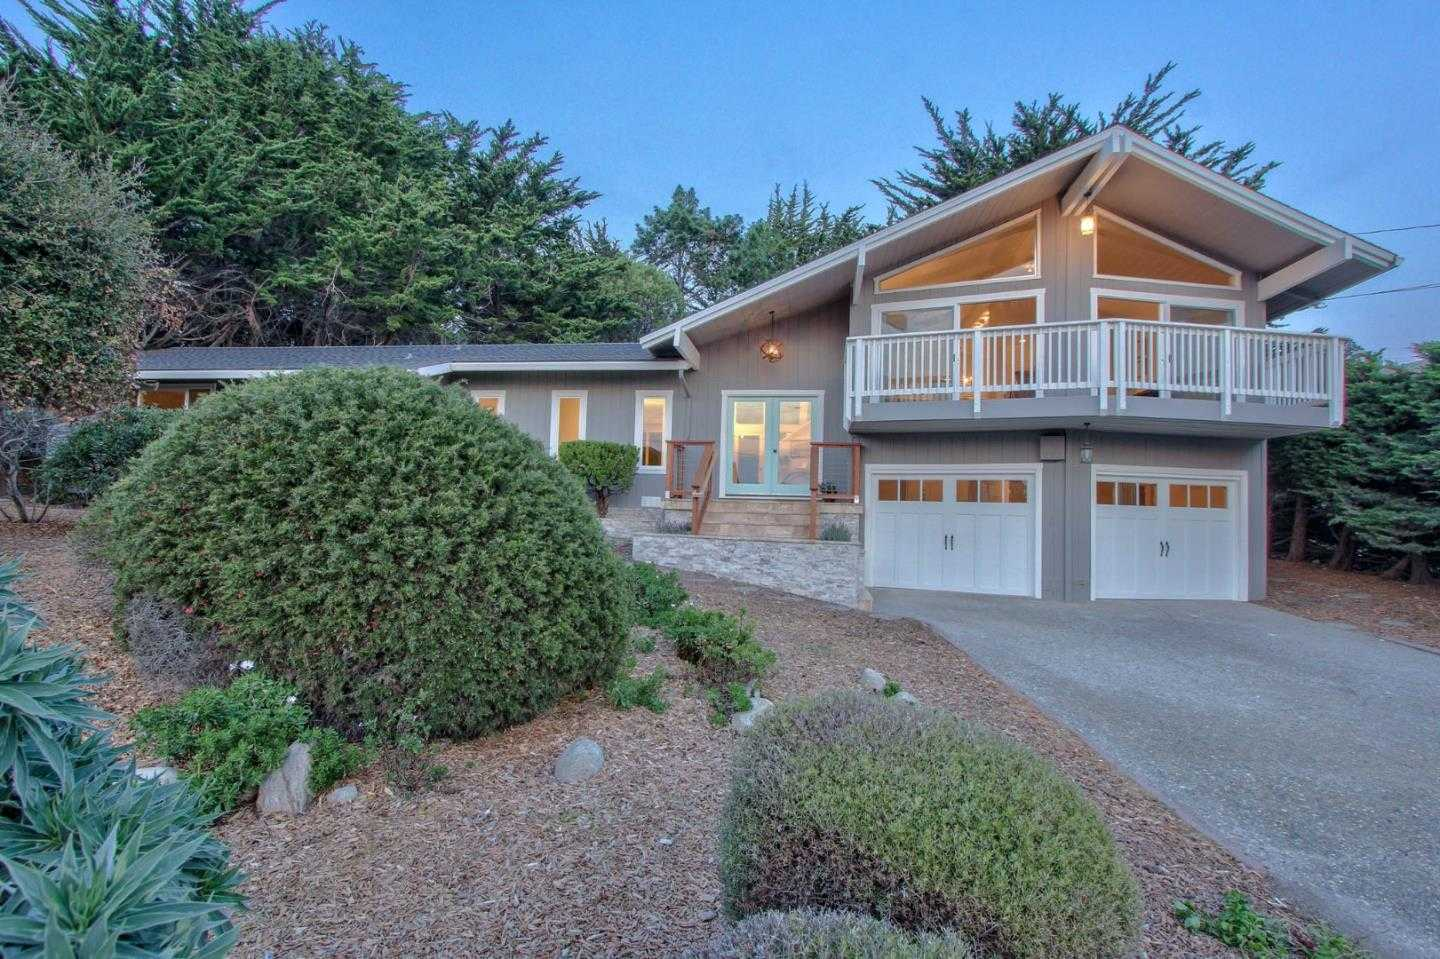 $1,495,000 - 3Br/2Ba -  for Sale in Carmel Highlands